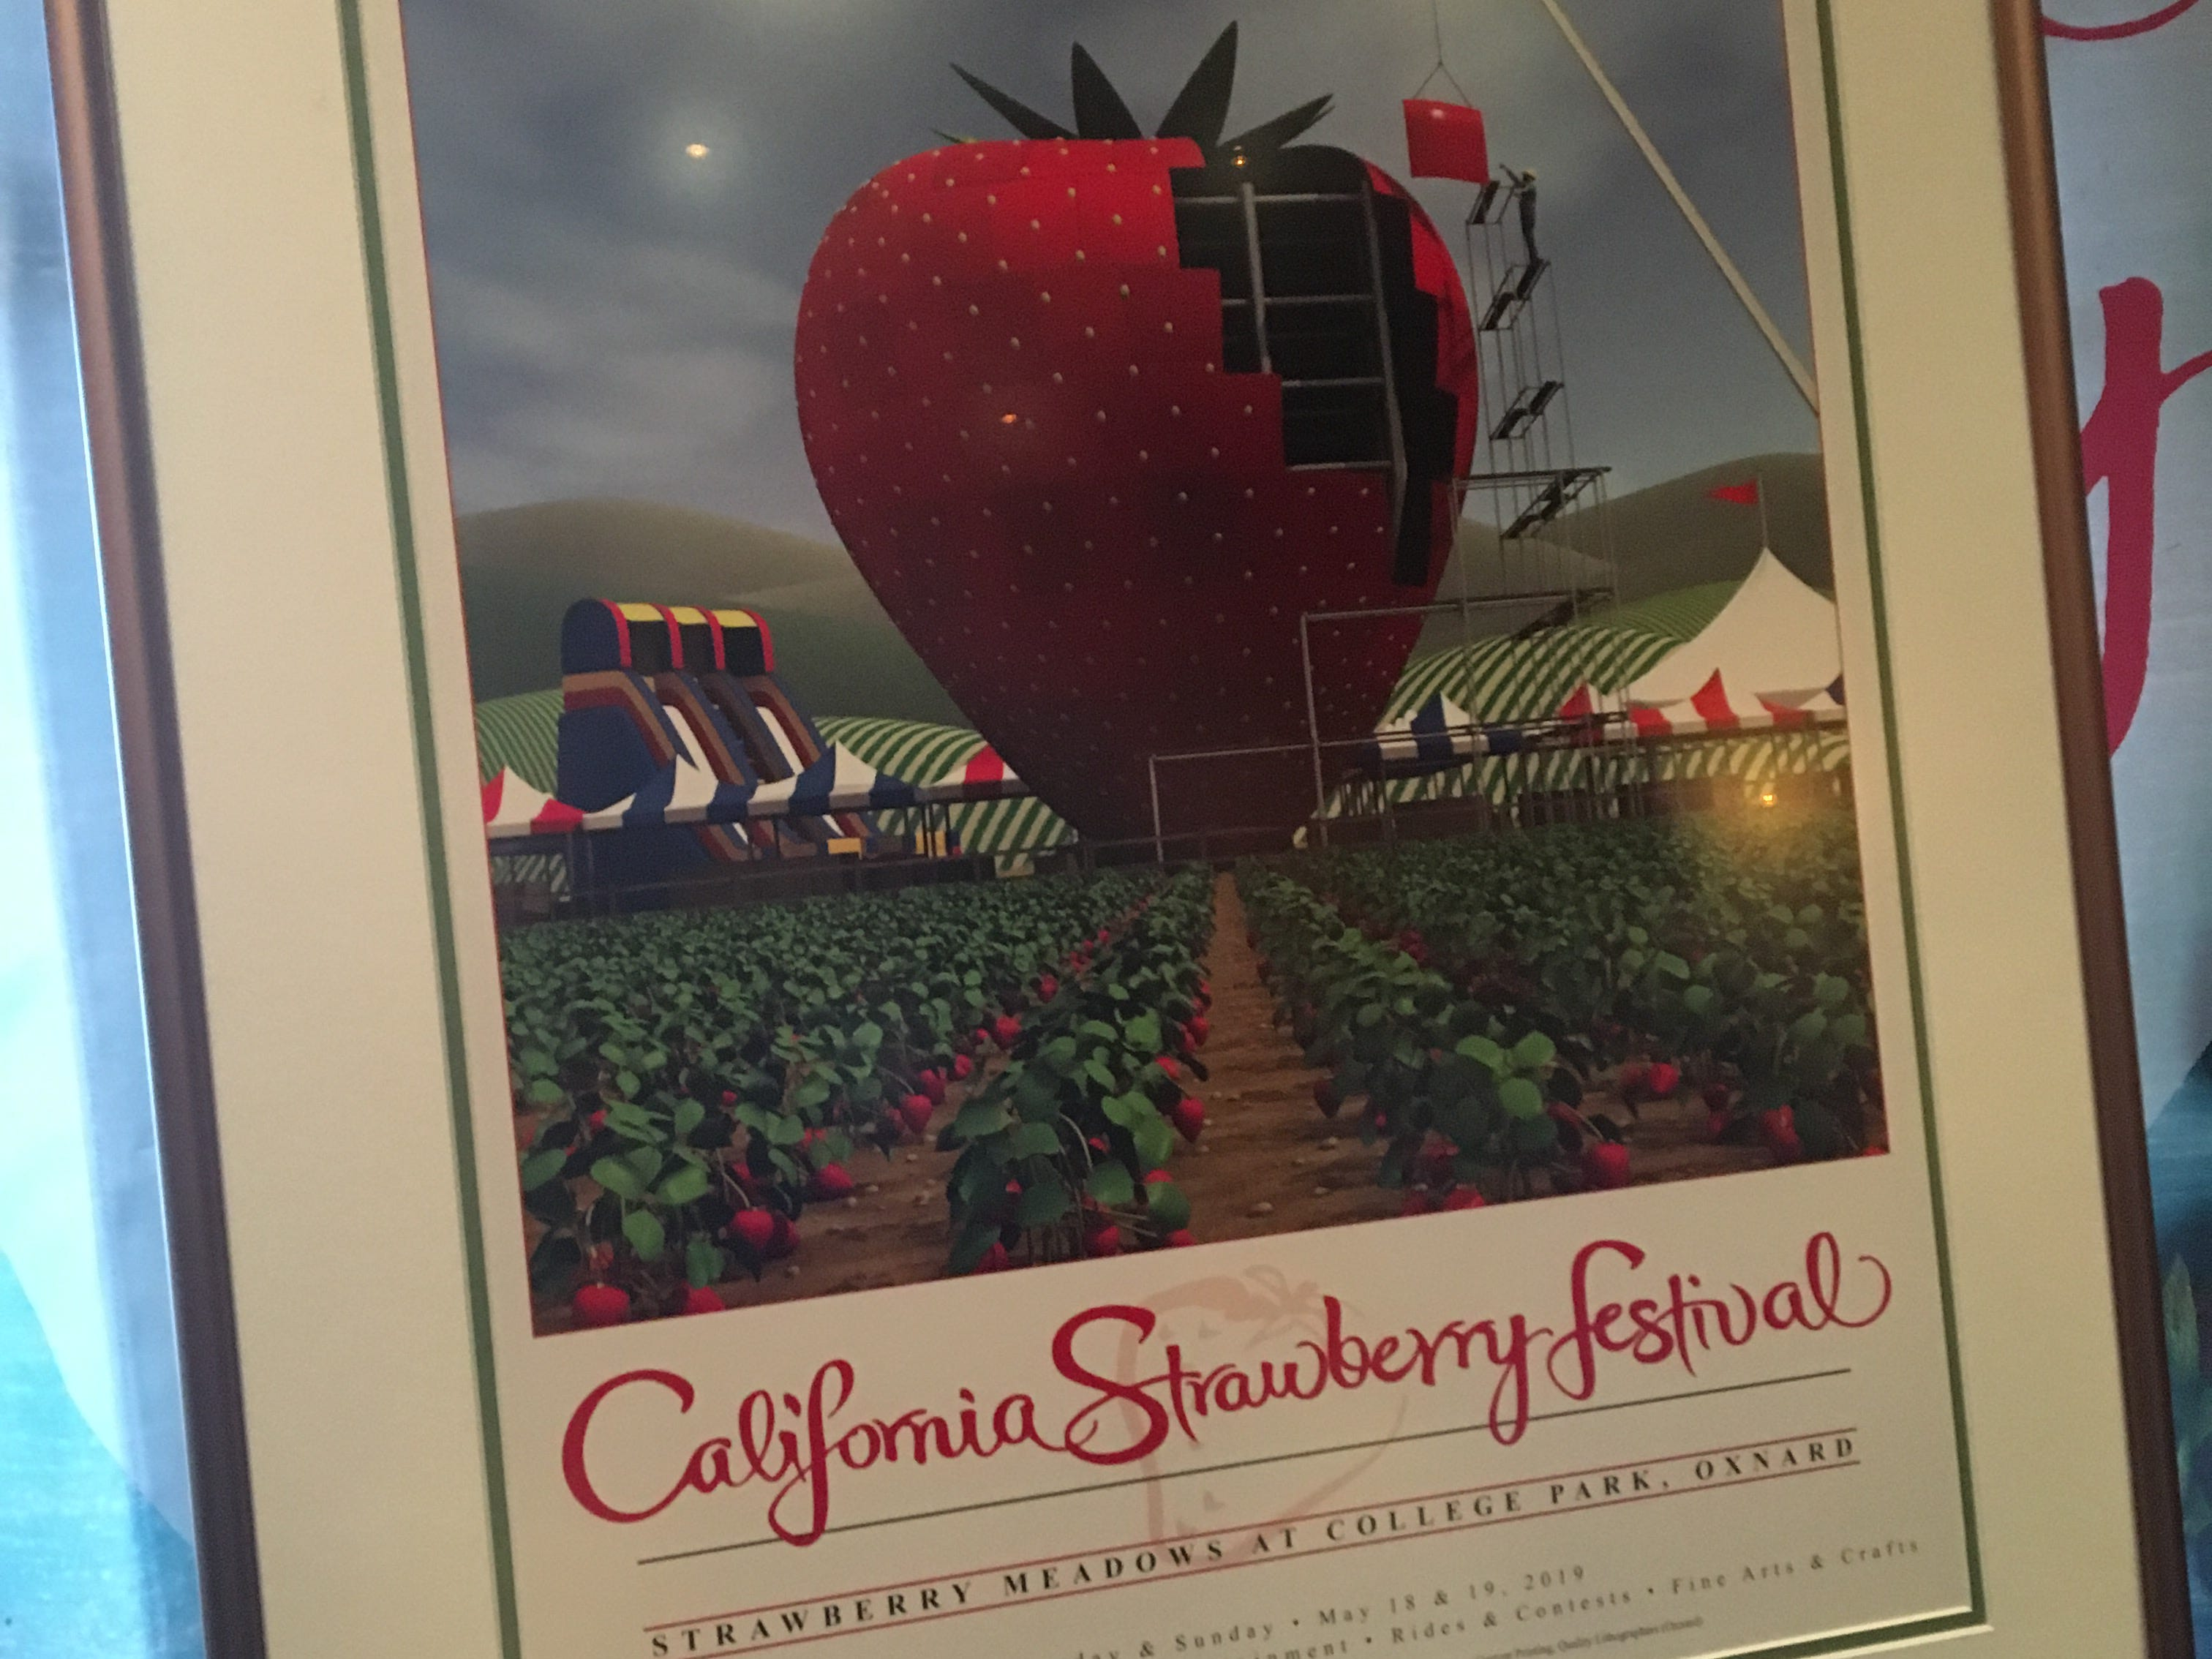 The official poster of the 36th Annual California Strawberry Festival was unveiled at a ceremony Tuesday at Yolanda's Mexican Cafe in Oxnard.